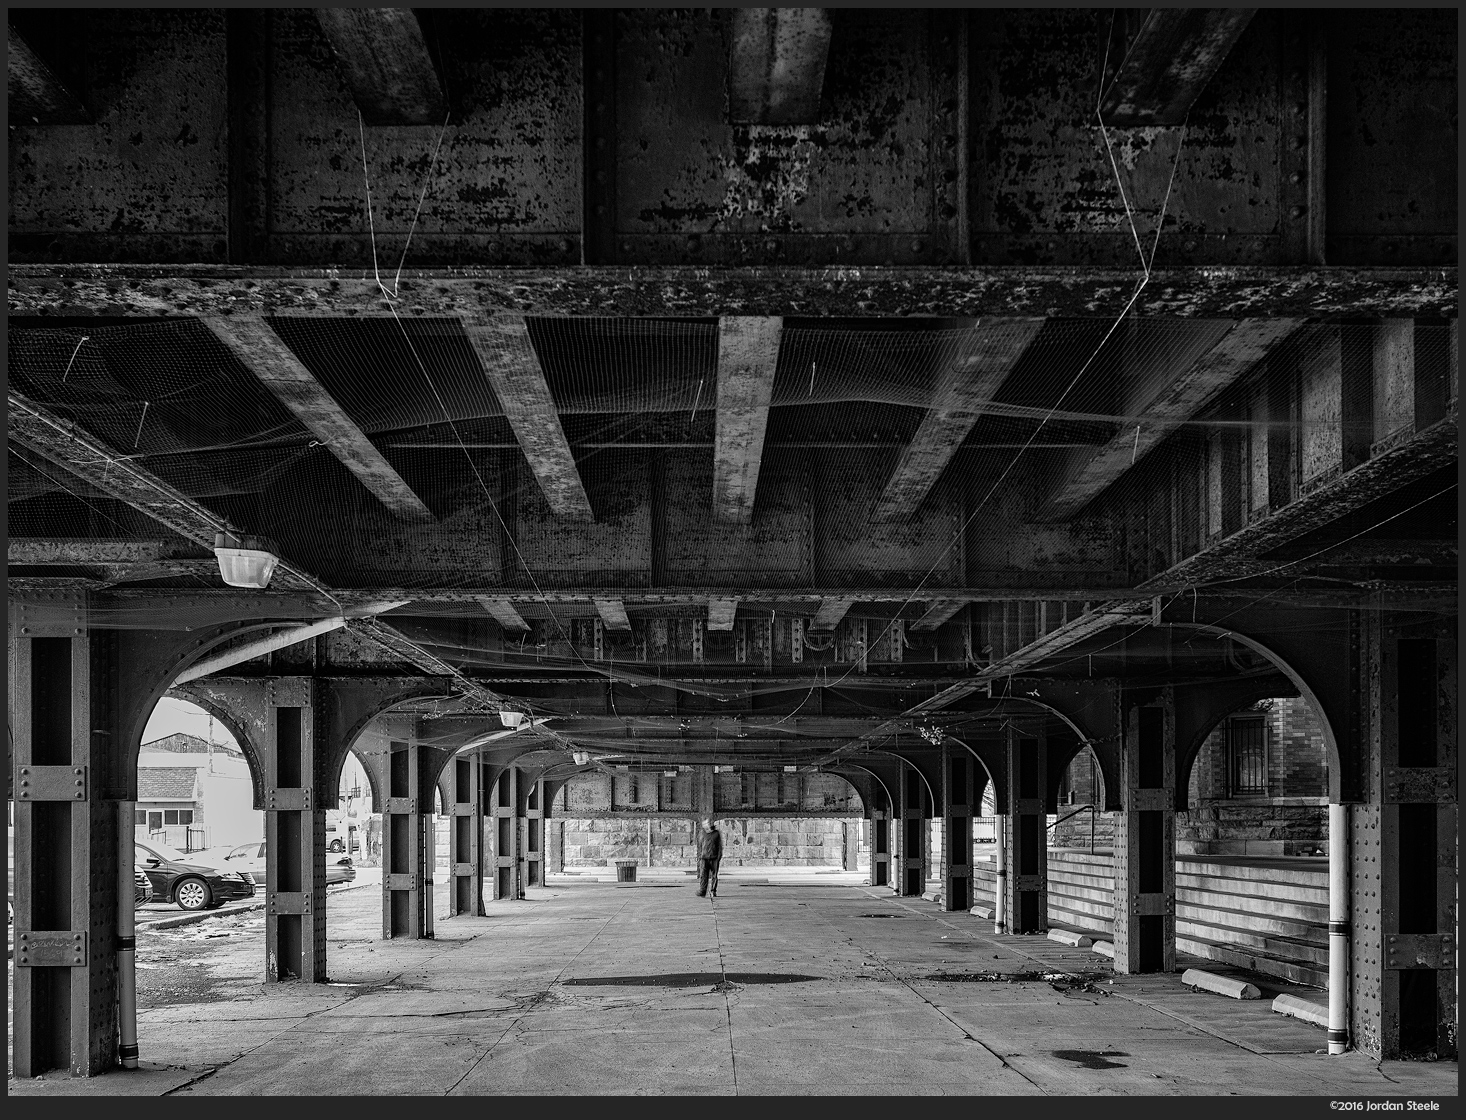 Under the Railroad - Olympus Pen-F with Panasonic 12-32mm f/3.5-5.6 @